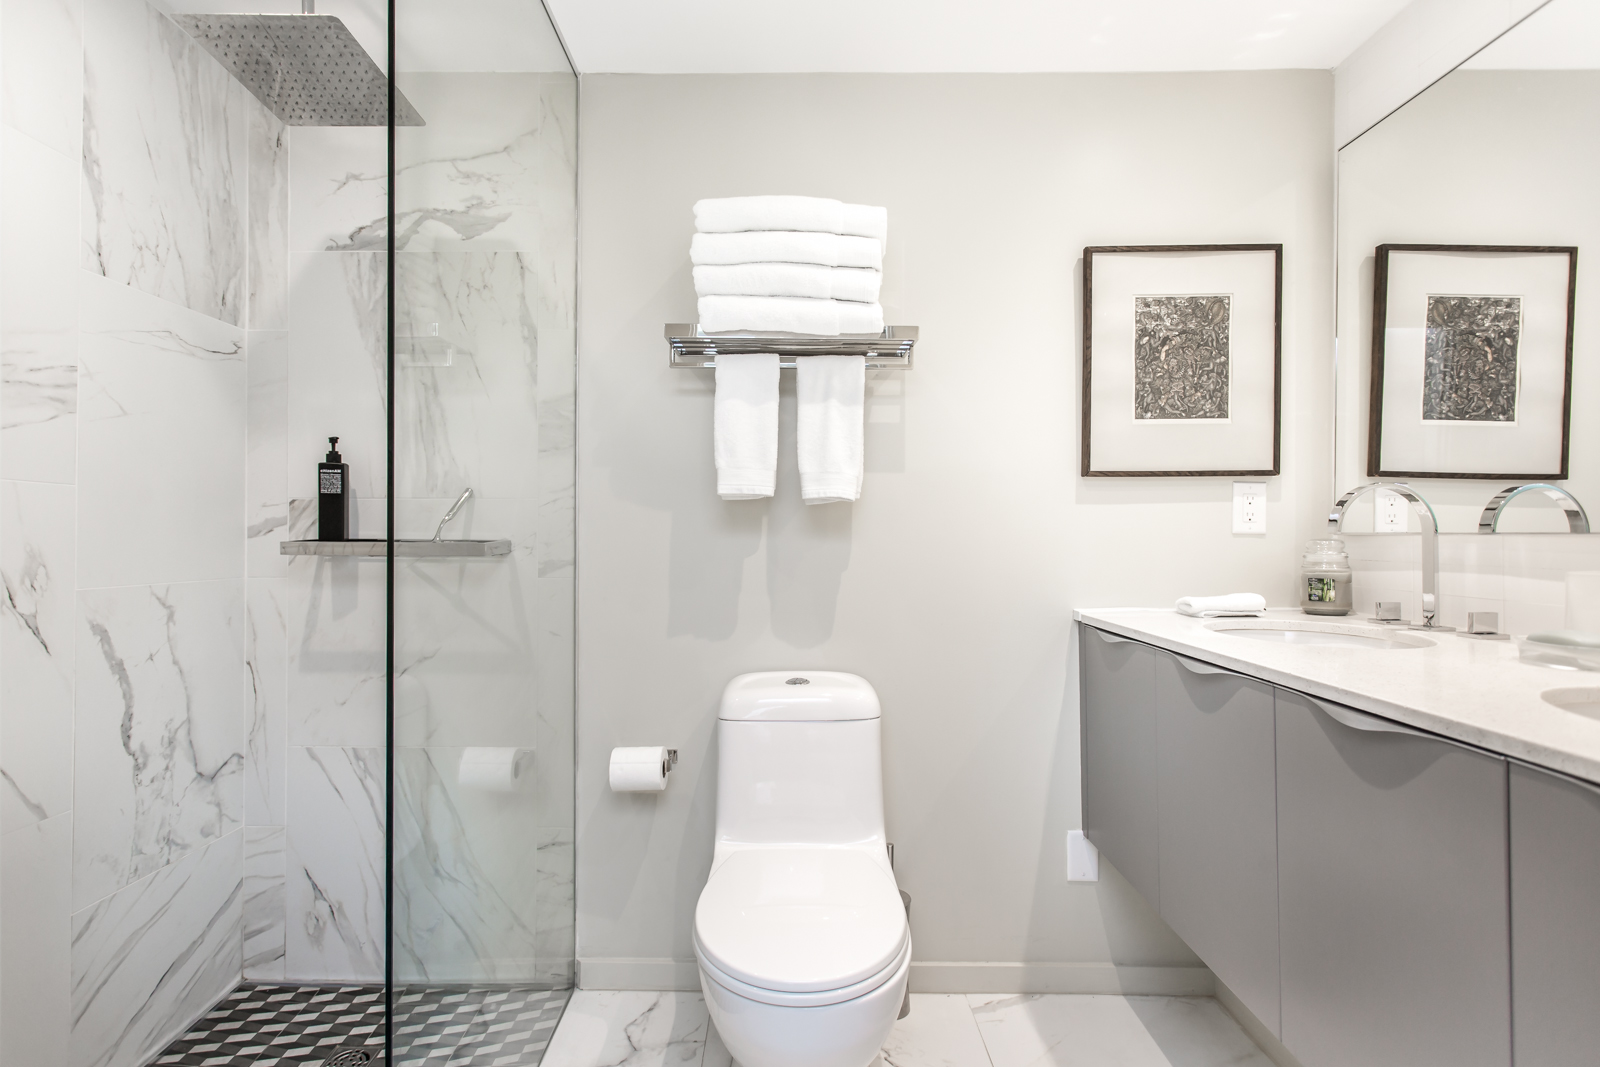 Photo of bathroom and it looks so beautiful with gray colours and simple layout.